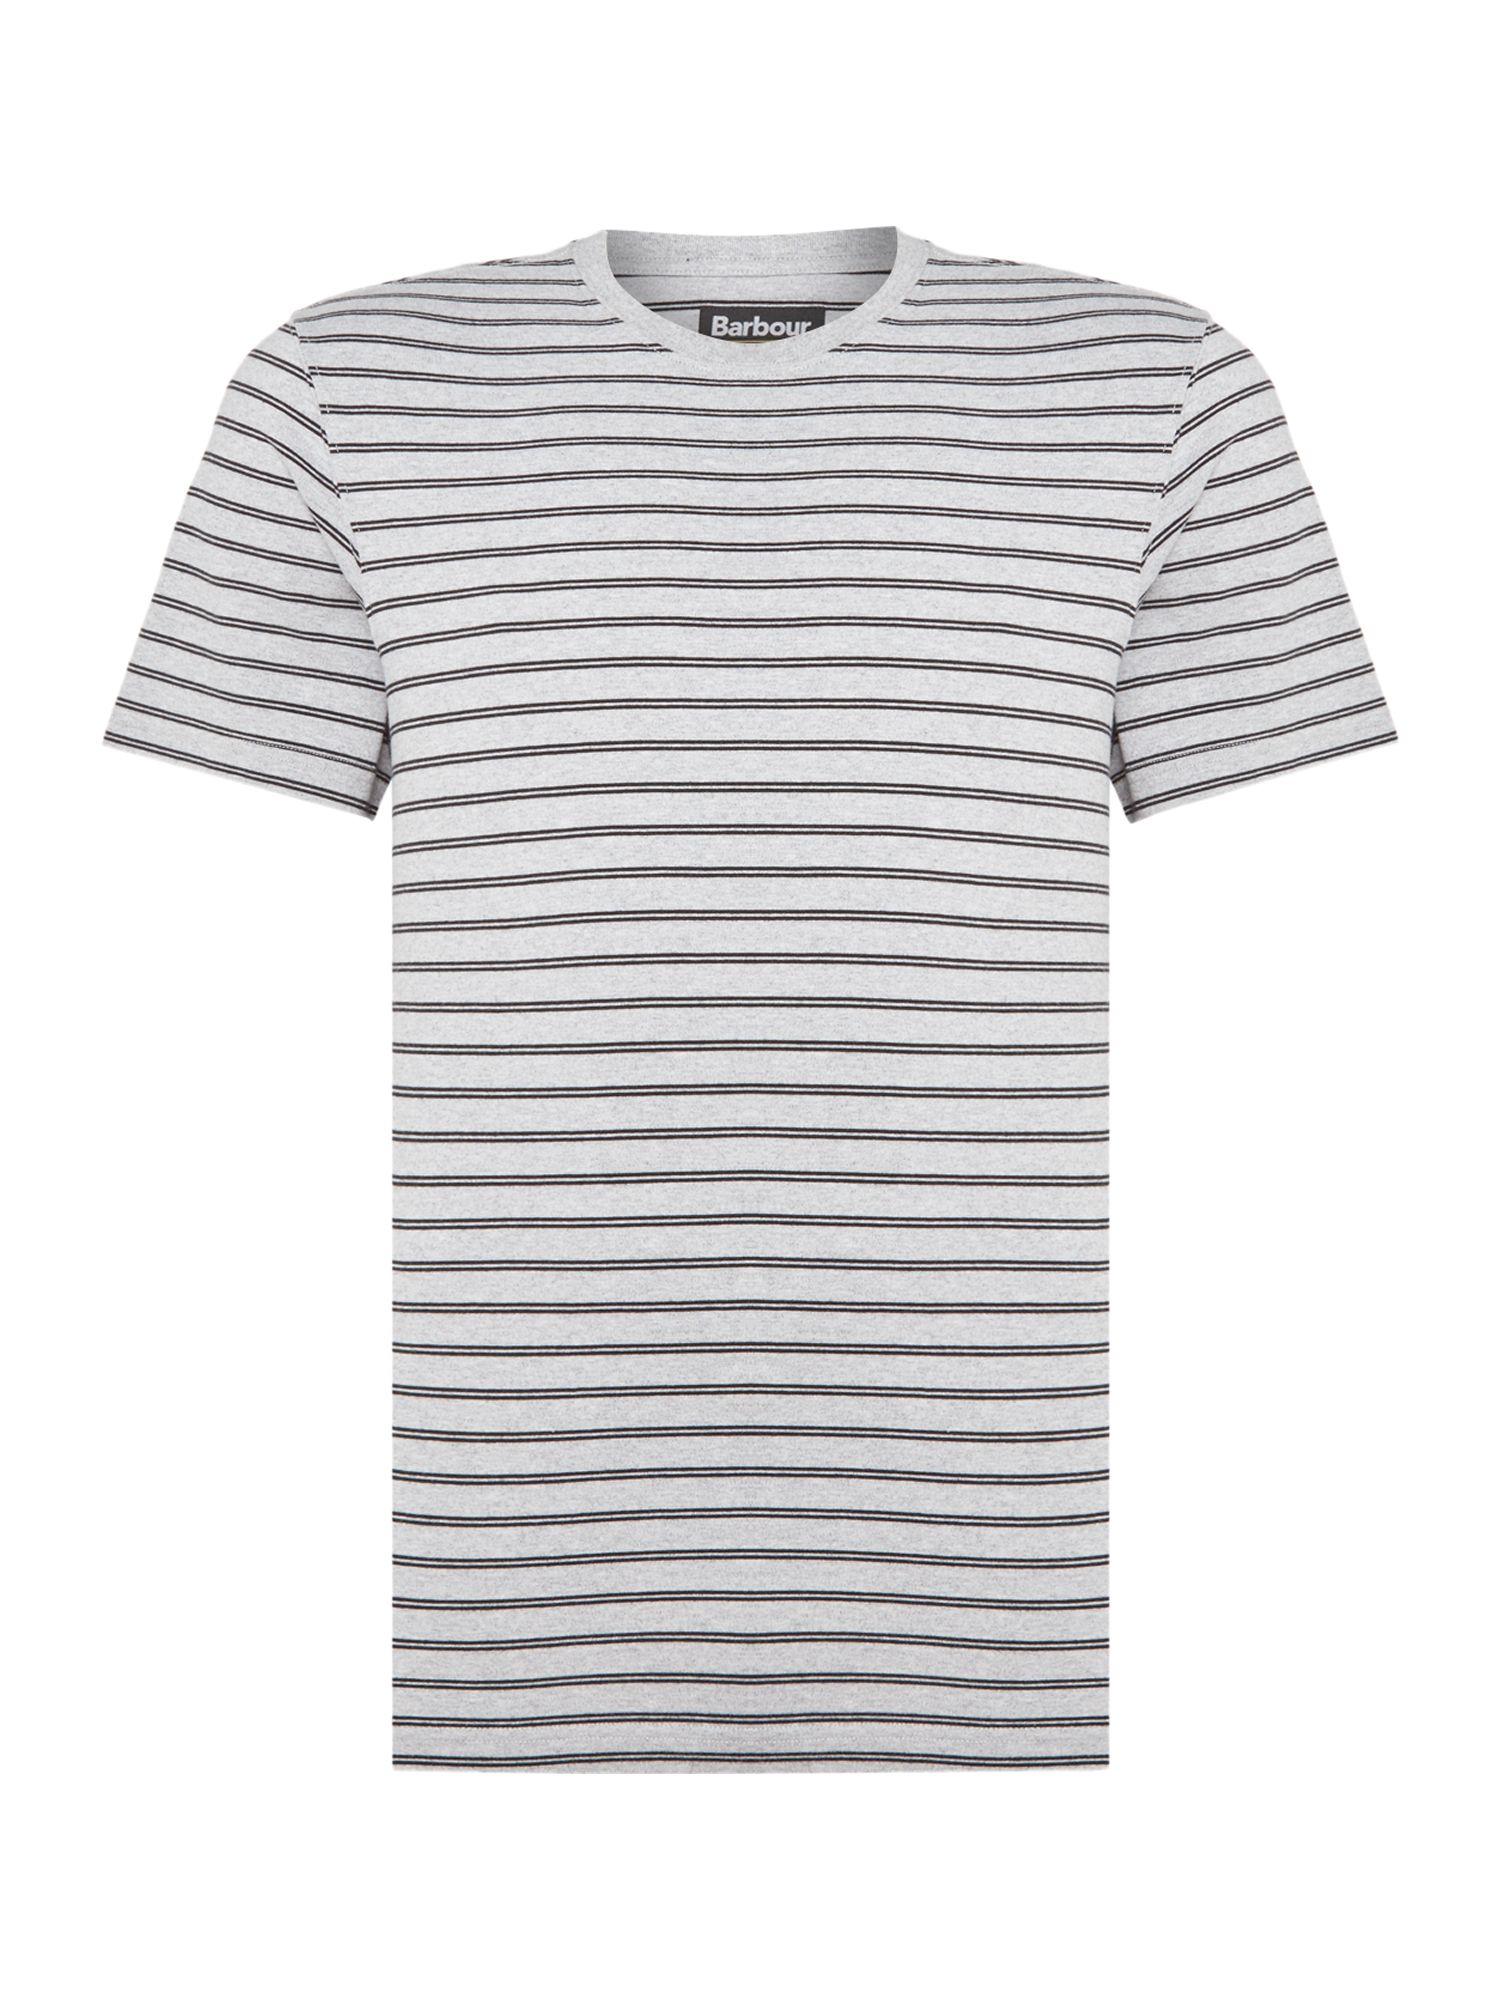 Men's Barbour Darly short sleeve striped t-shirt, Grey